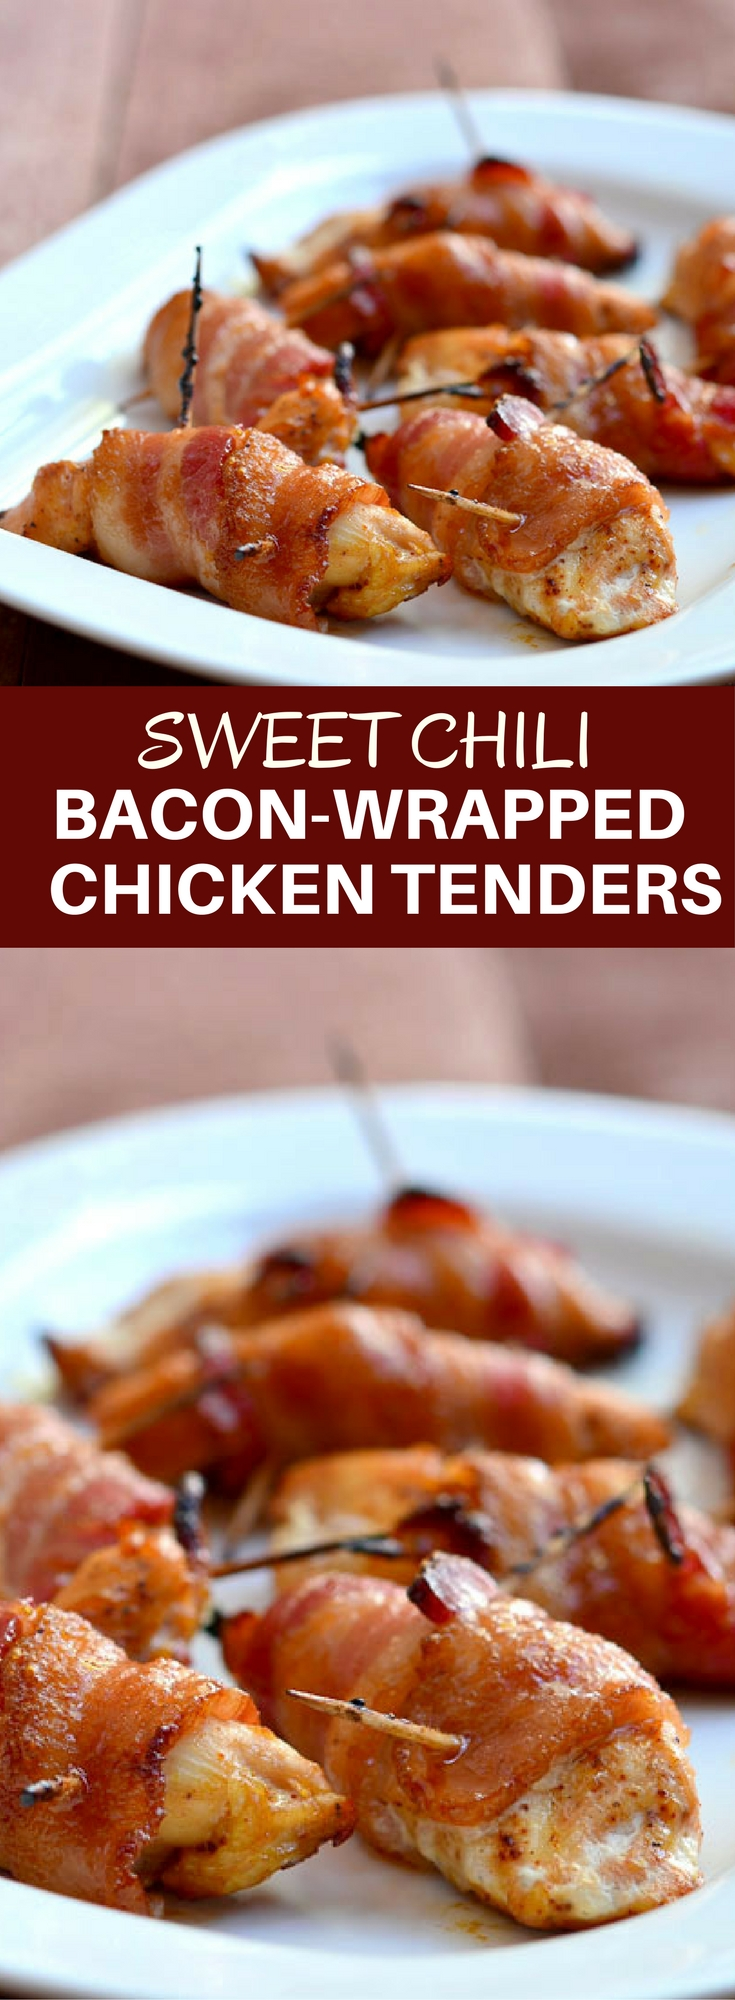 Sweet Chili Bacon-Wrapped Chicken Tenders coated in brown sugar and chili powder and then baked until crisp and delicious! Perfect as game day appetizers or as an easy weeknight dinner.